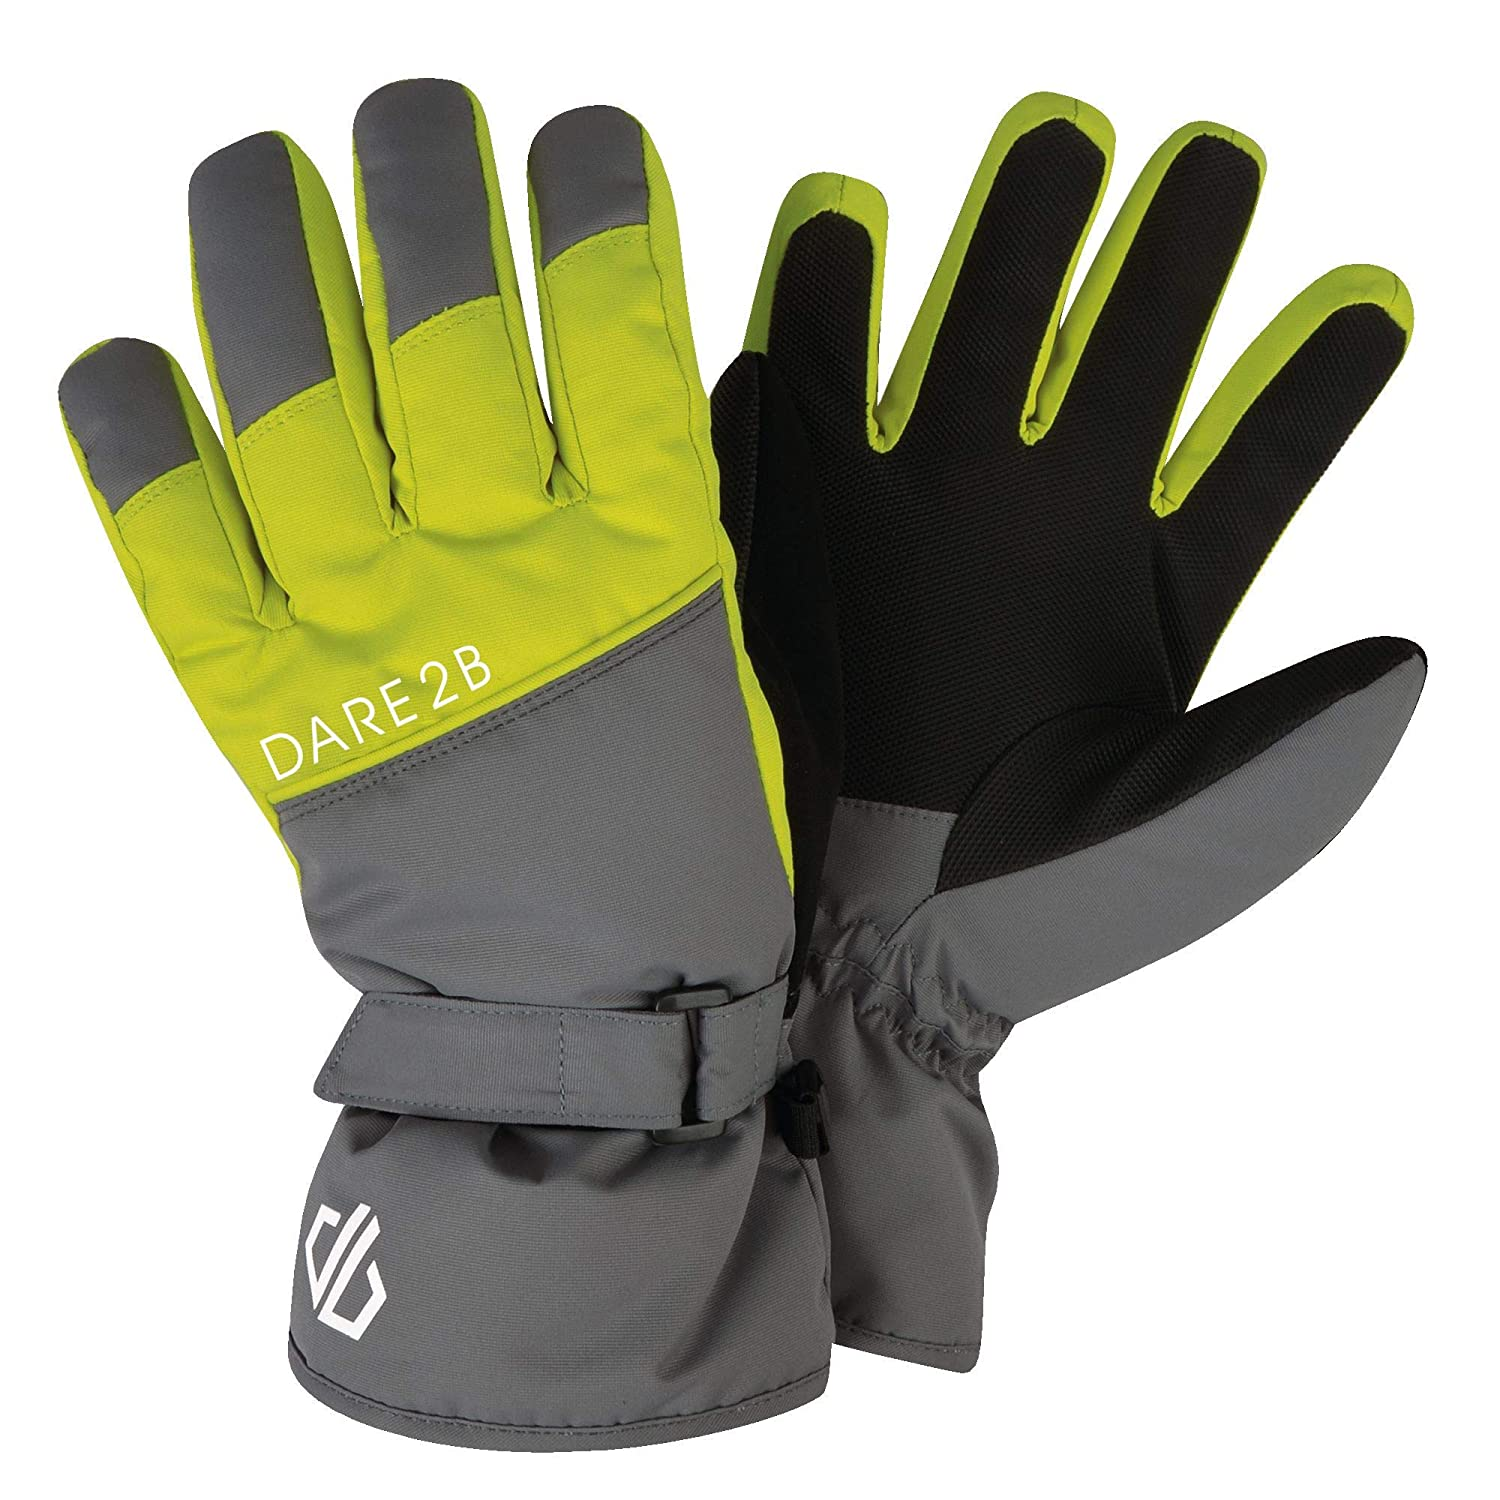 Guanti Unisex Bambini Dare 2B Mischievous Waterproof High Loft Insulated Ski And Snowboard Glove with Gripped Palm